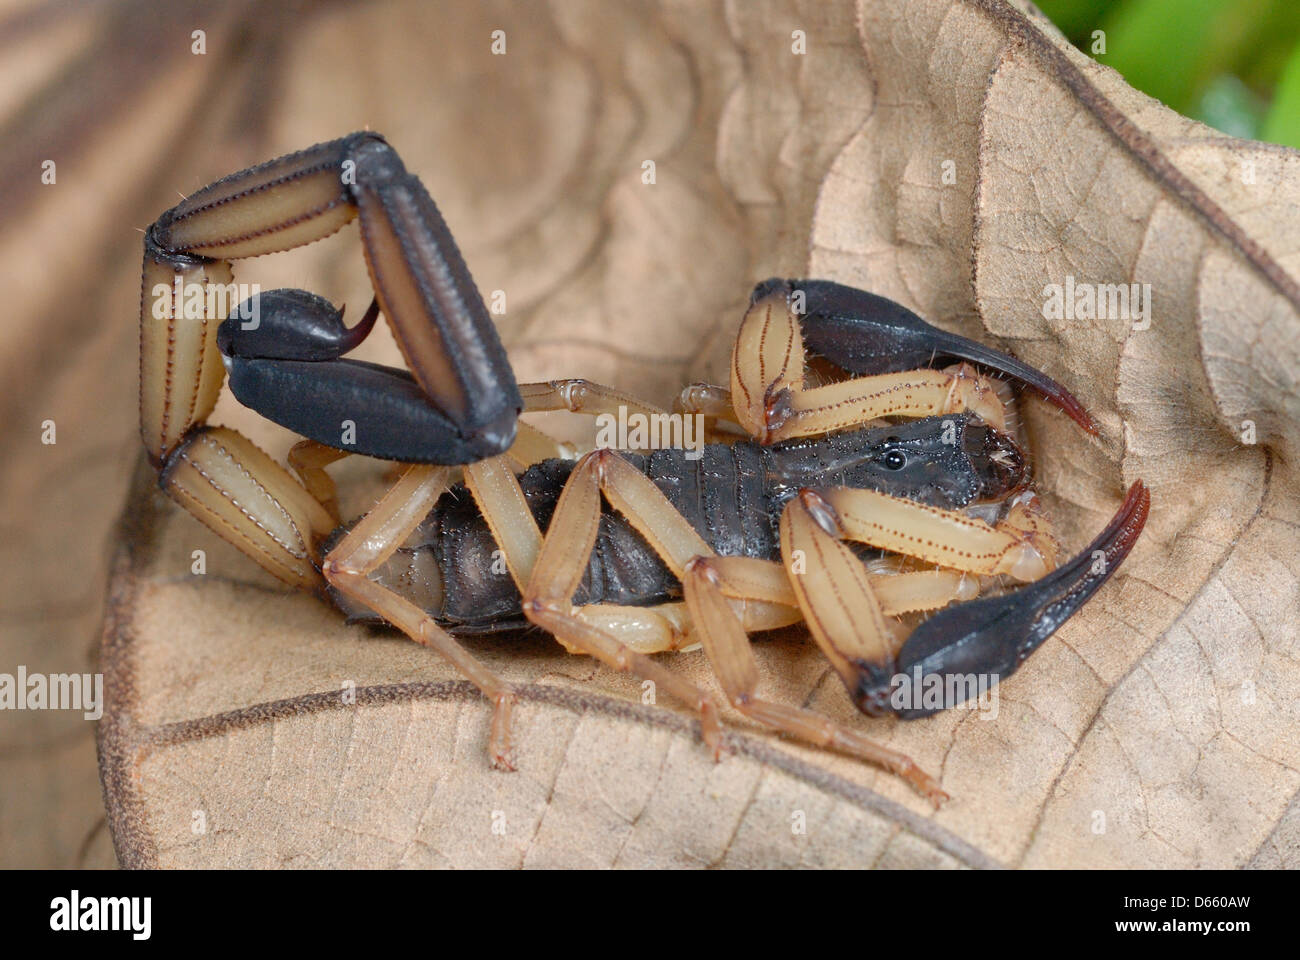 Bark Scorpion (Centruroides bicolour) in Costa Rica rainforest Stock Photo